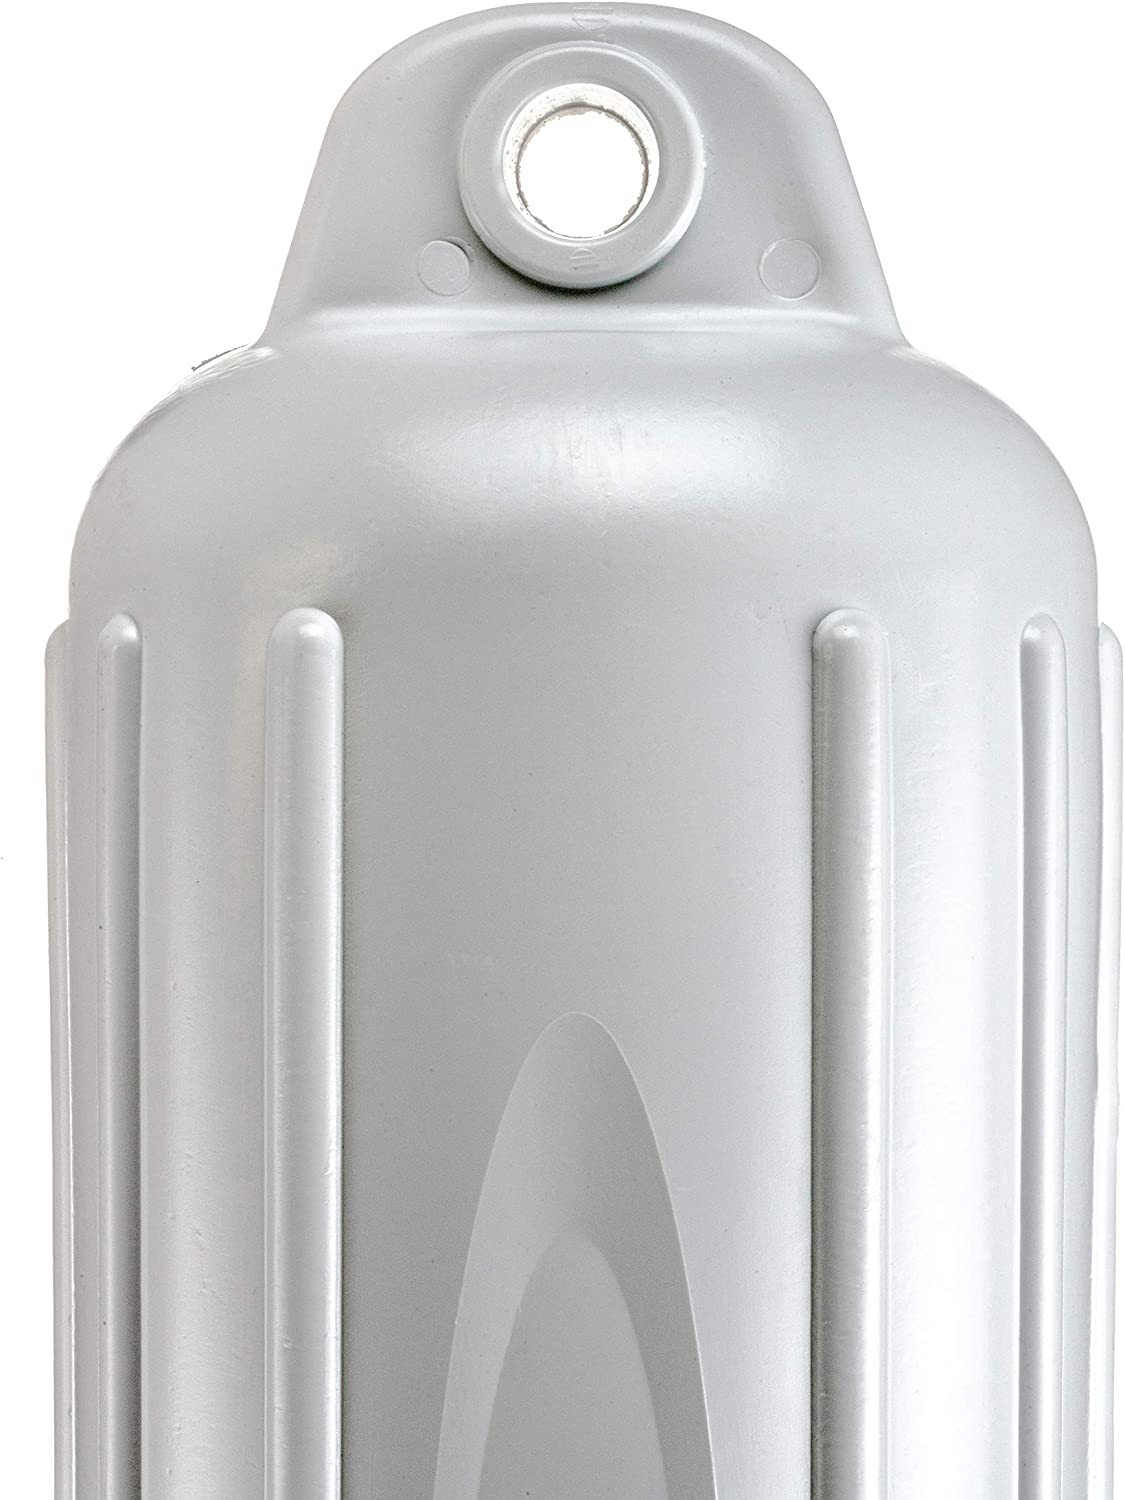 White Finish Attwood 9356D1 Softside Oval Boat Fender with Thick-Wall Reinforced Eye Ends